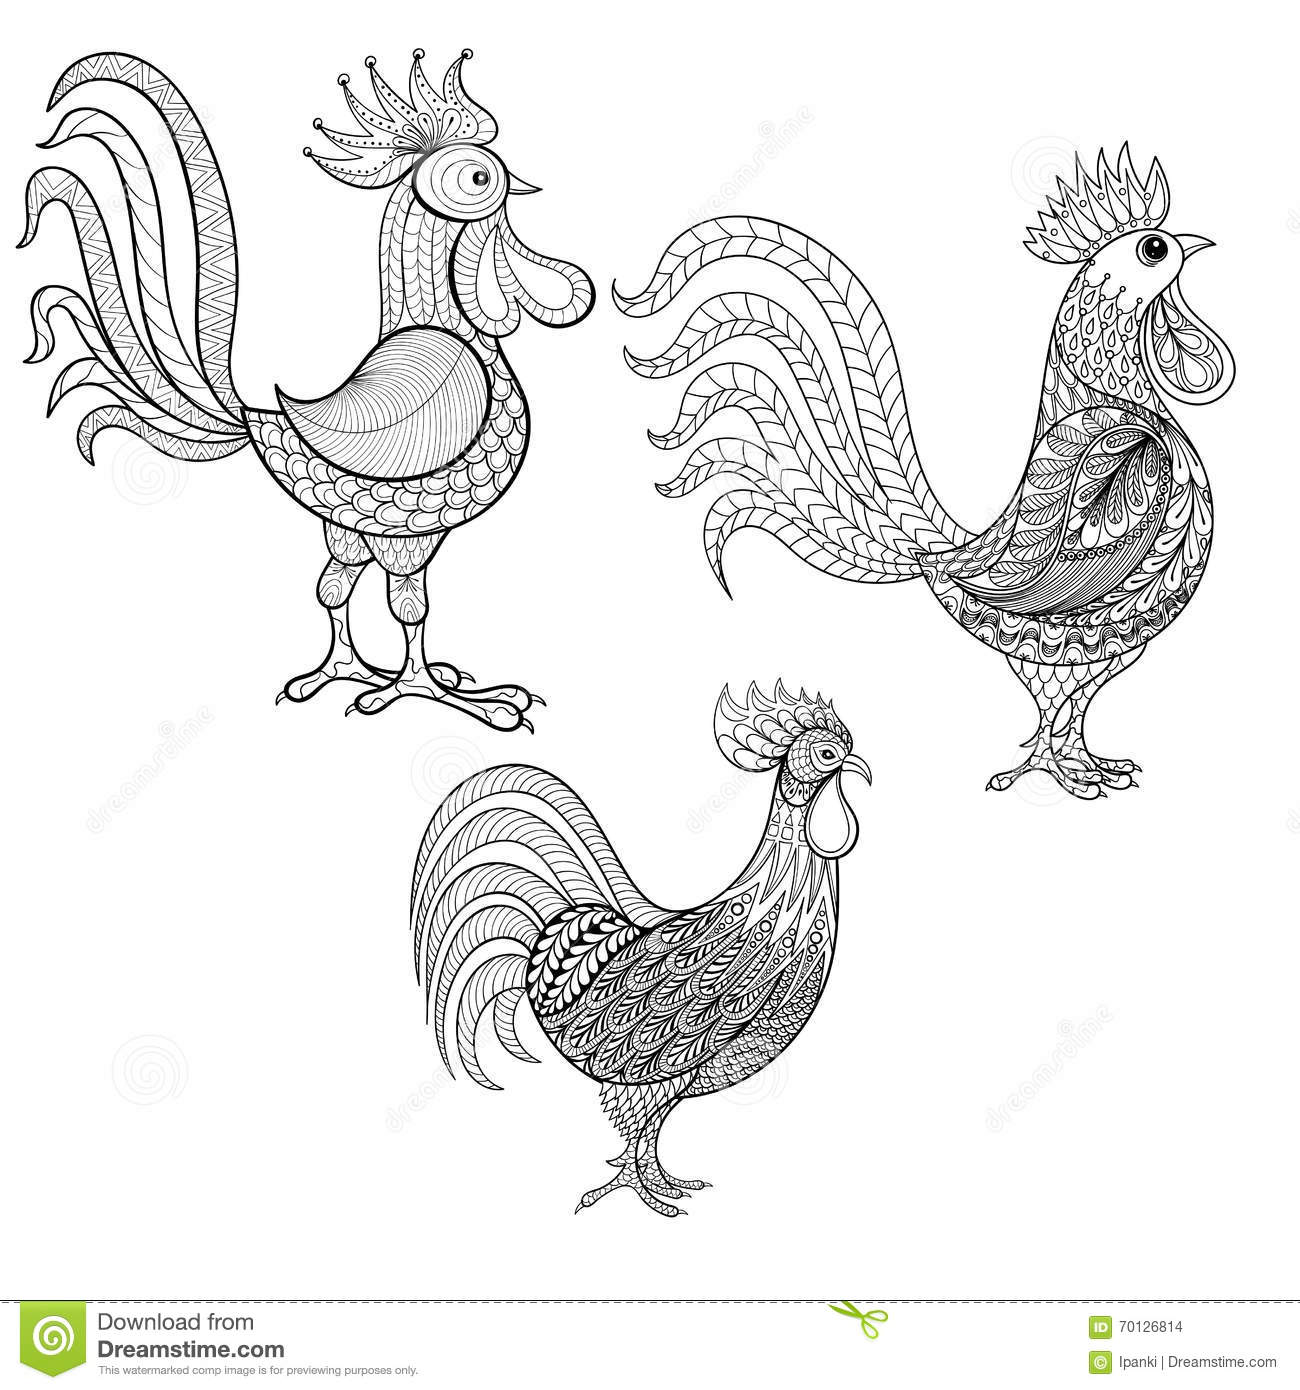 Colouring sheets chinese new year 2017 - More Similar Stock Images Of Set Of Chinese 2017 New Year Roosters